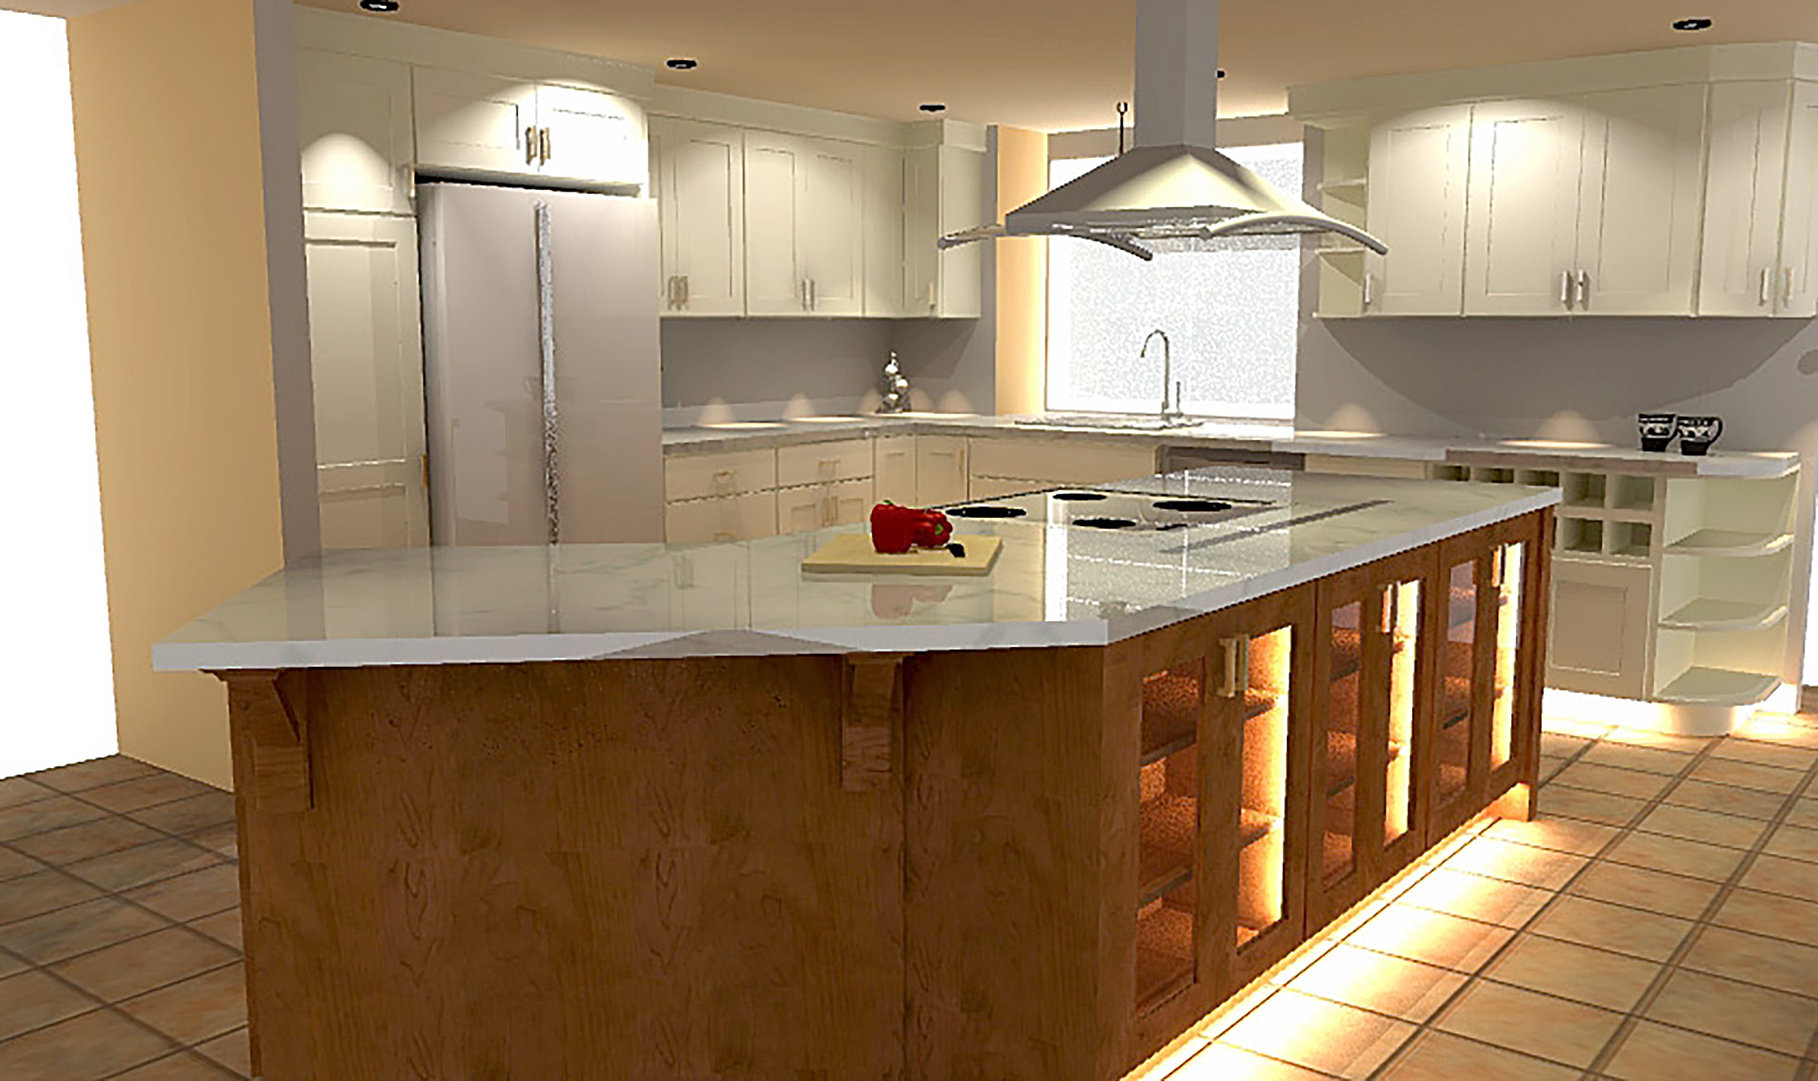 3D Designed Kitchens and Bathrooms